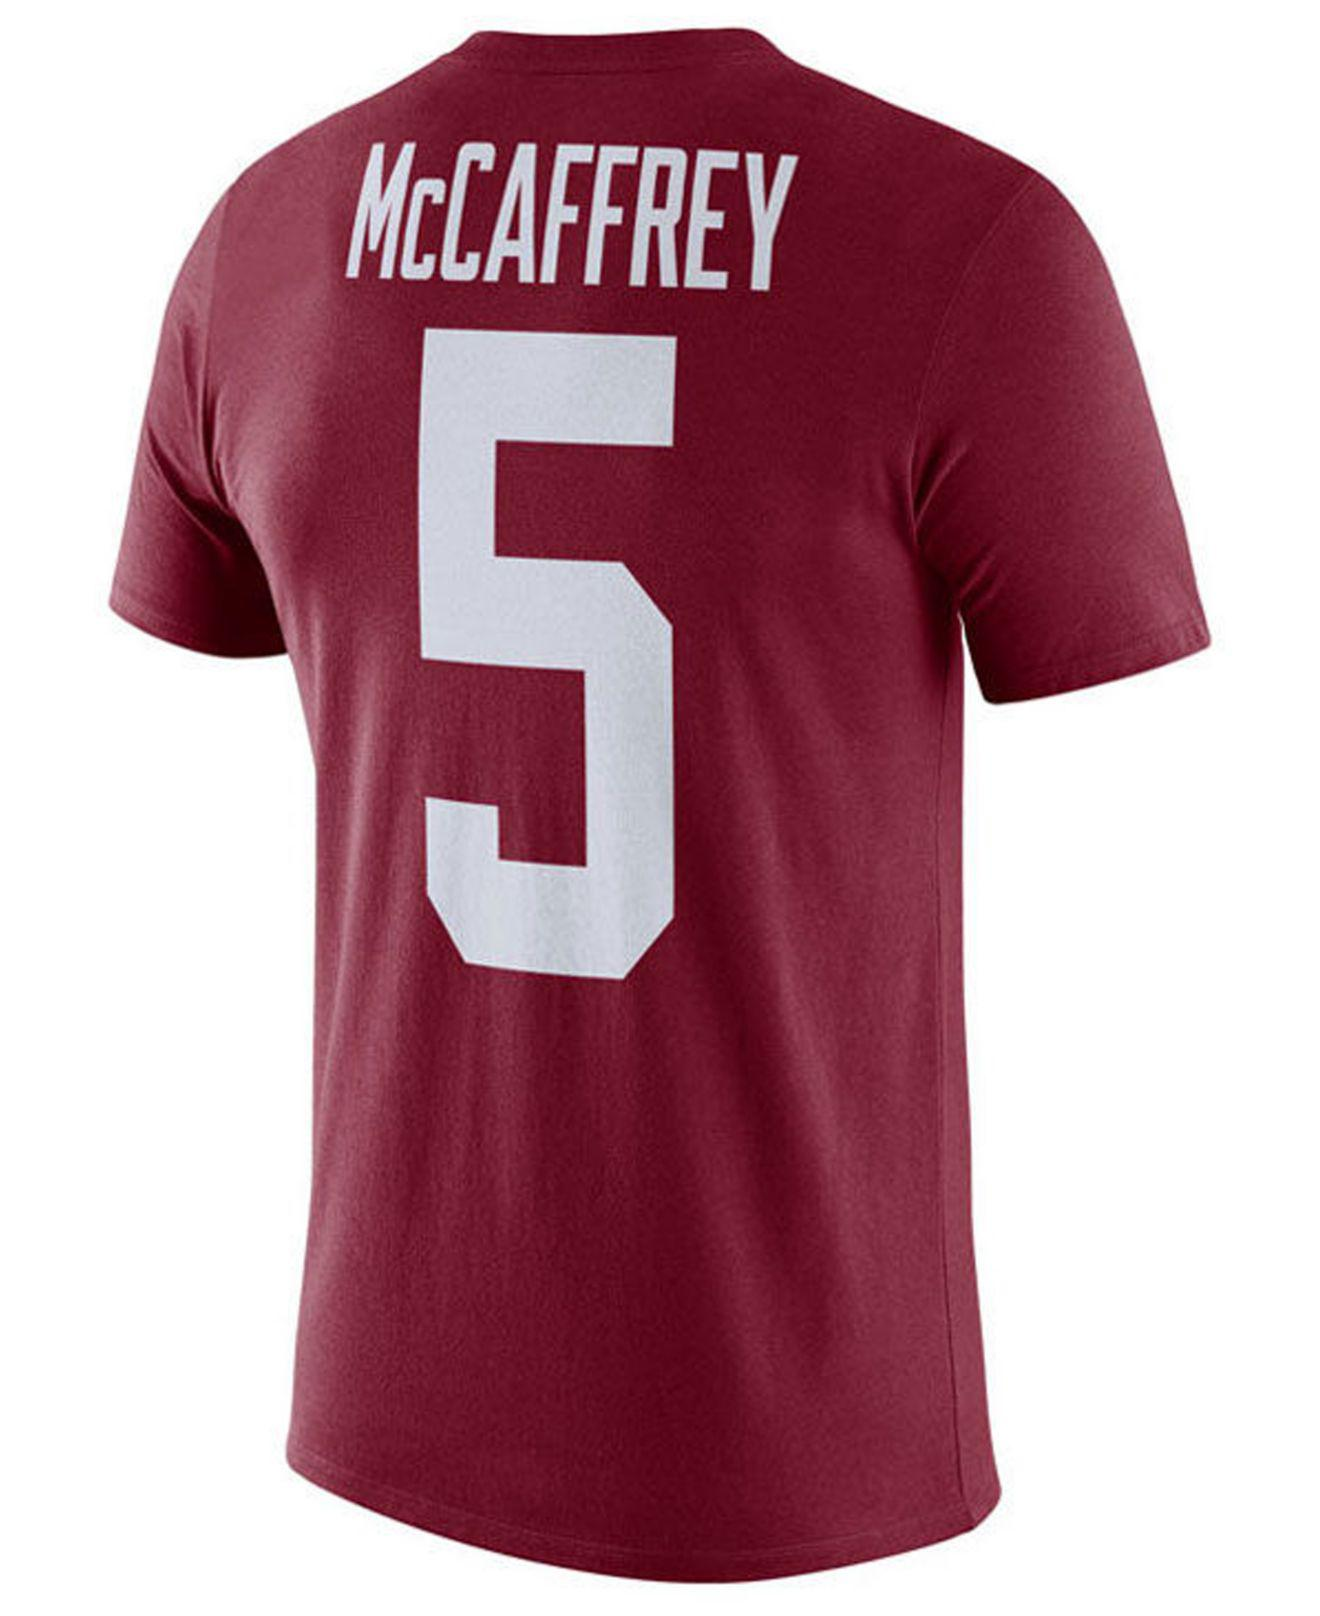 18f4d981 Lyst - Nike Christian Mccaffrey Stanford Cardinal Name And Number T ...